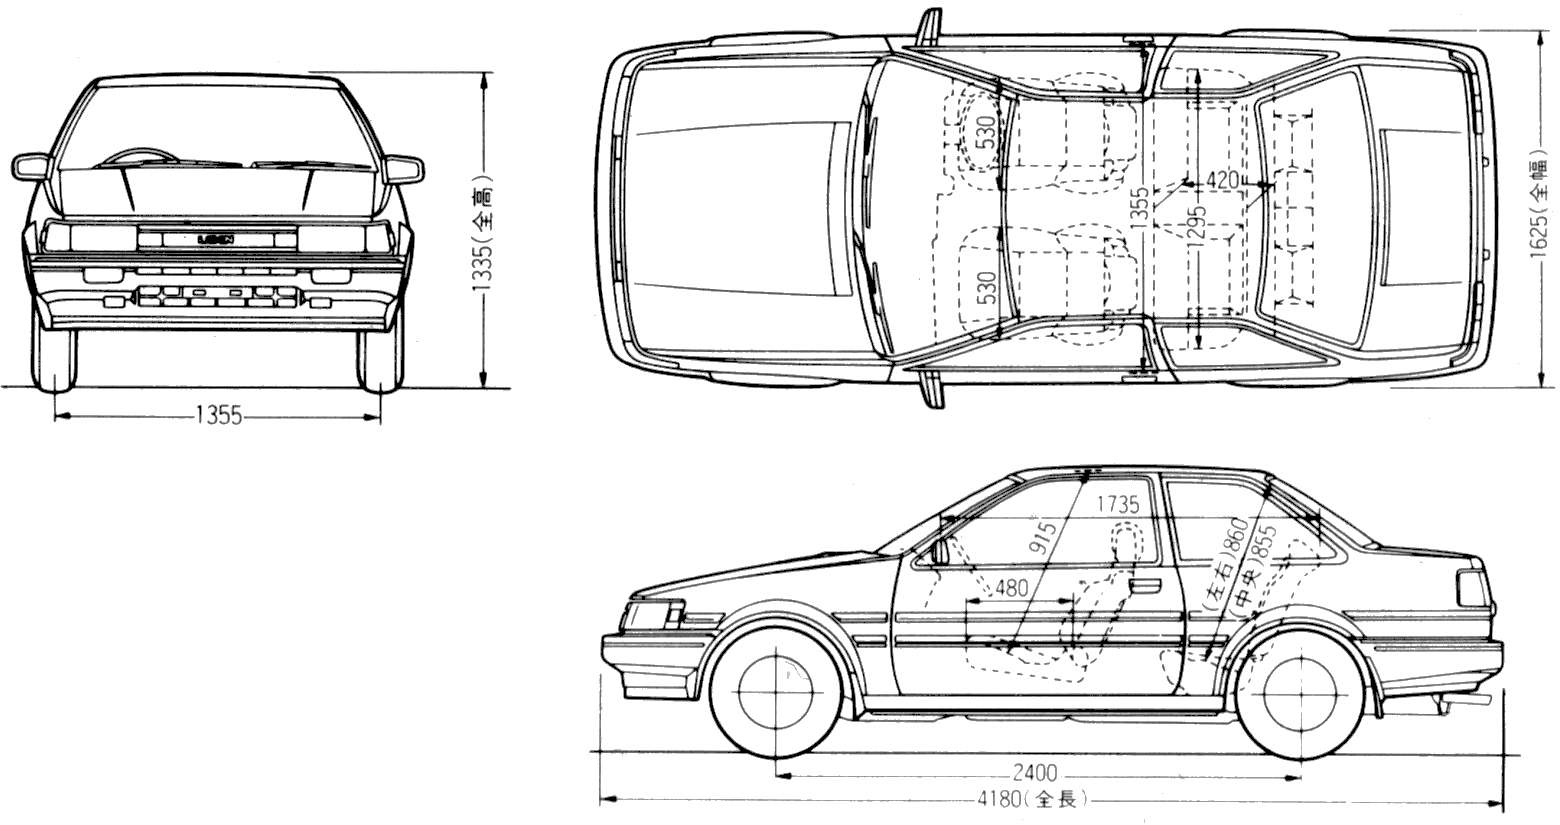 1983 toyota levin ae86 2 door coupe blueprints free outlines toyota levin ae86 2 door blueprints malvernweather Image collections